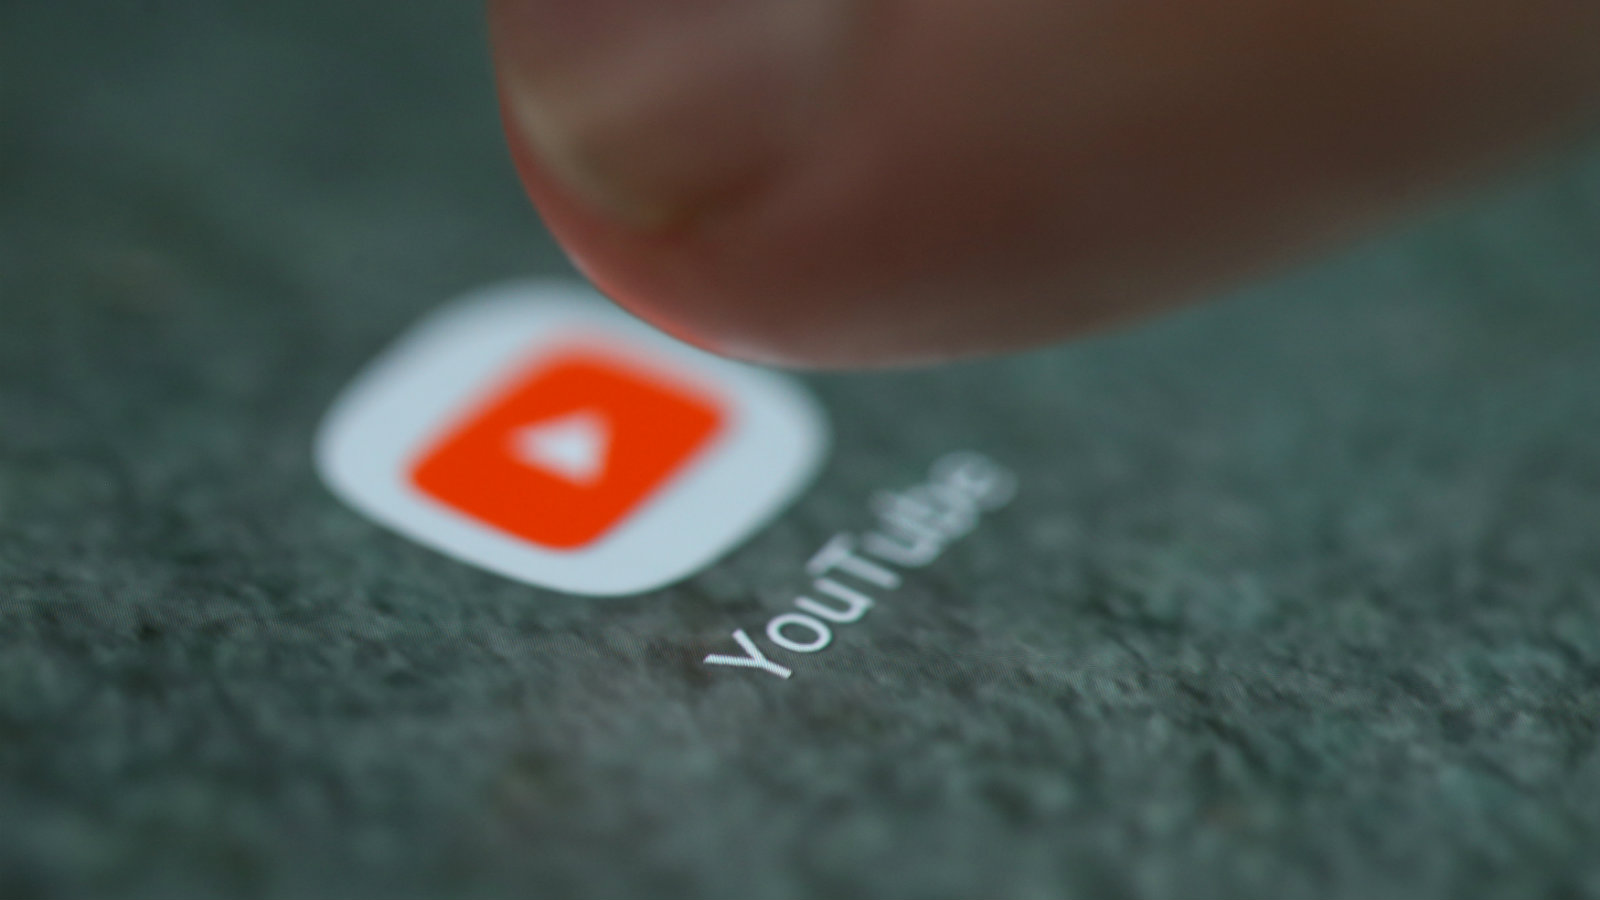 The YouTube app logo on a smartphone.